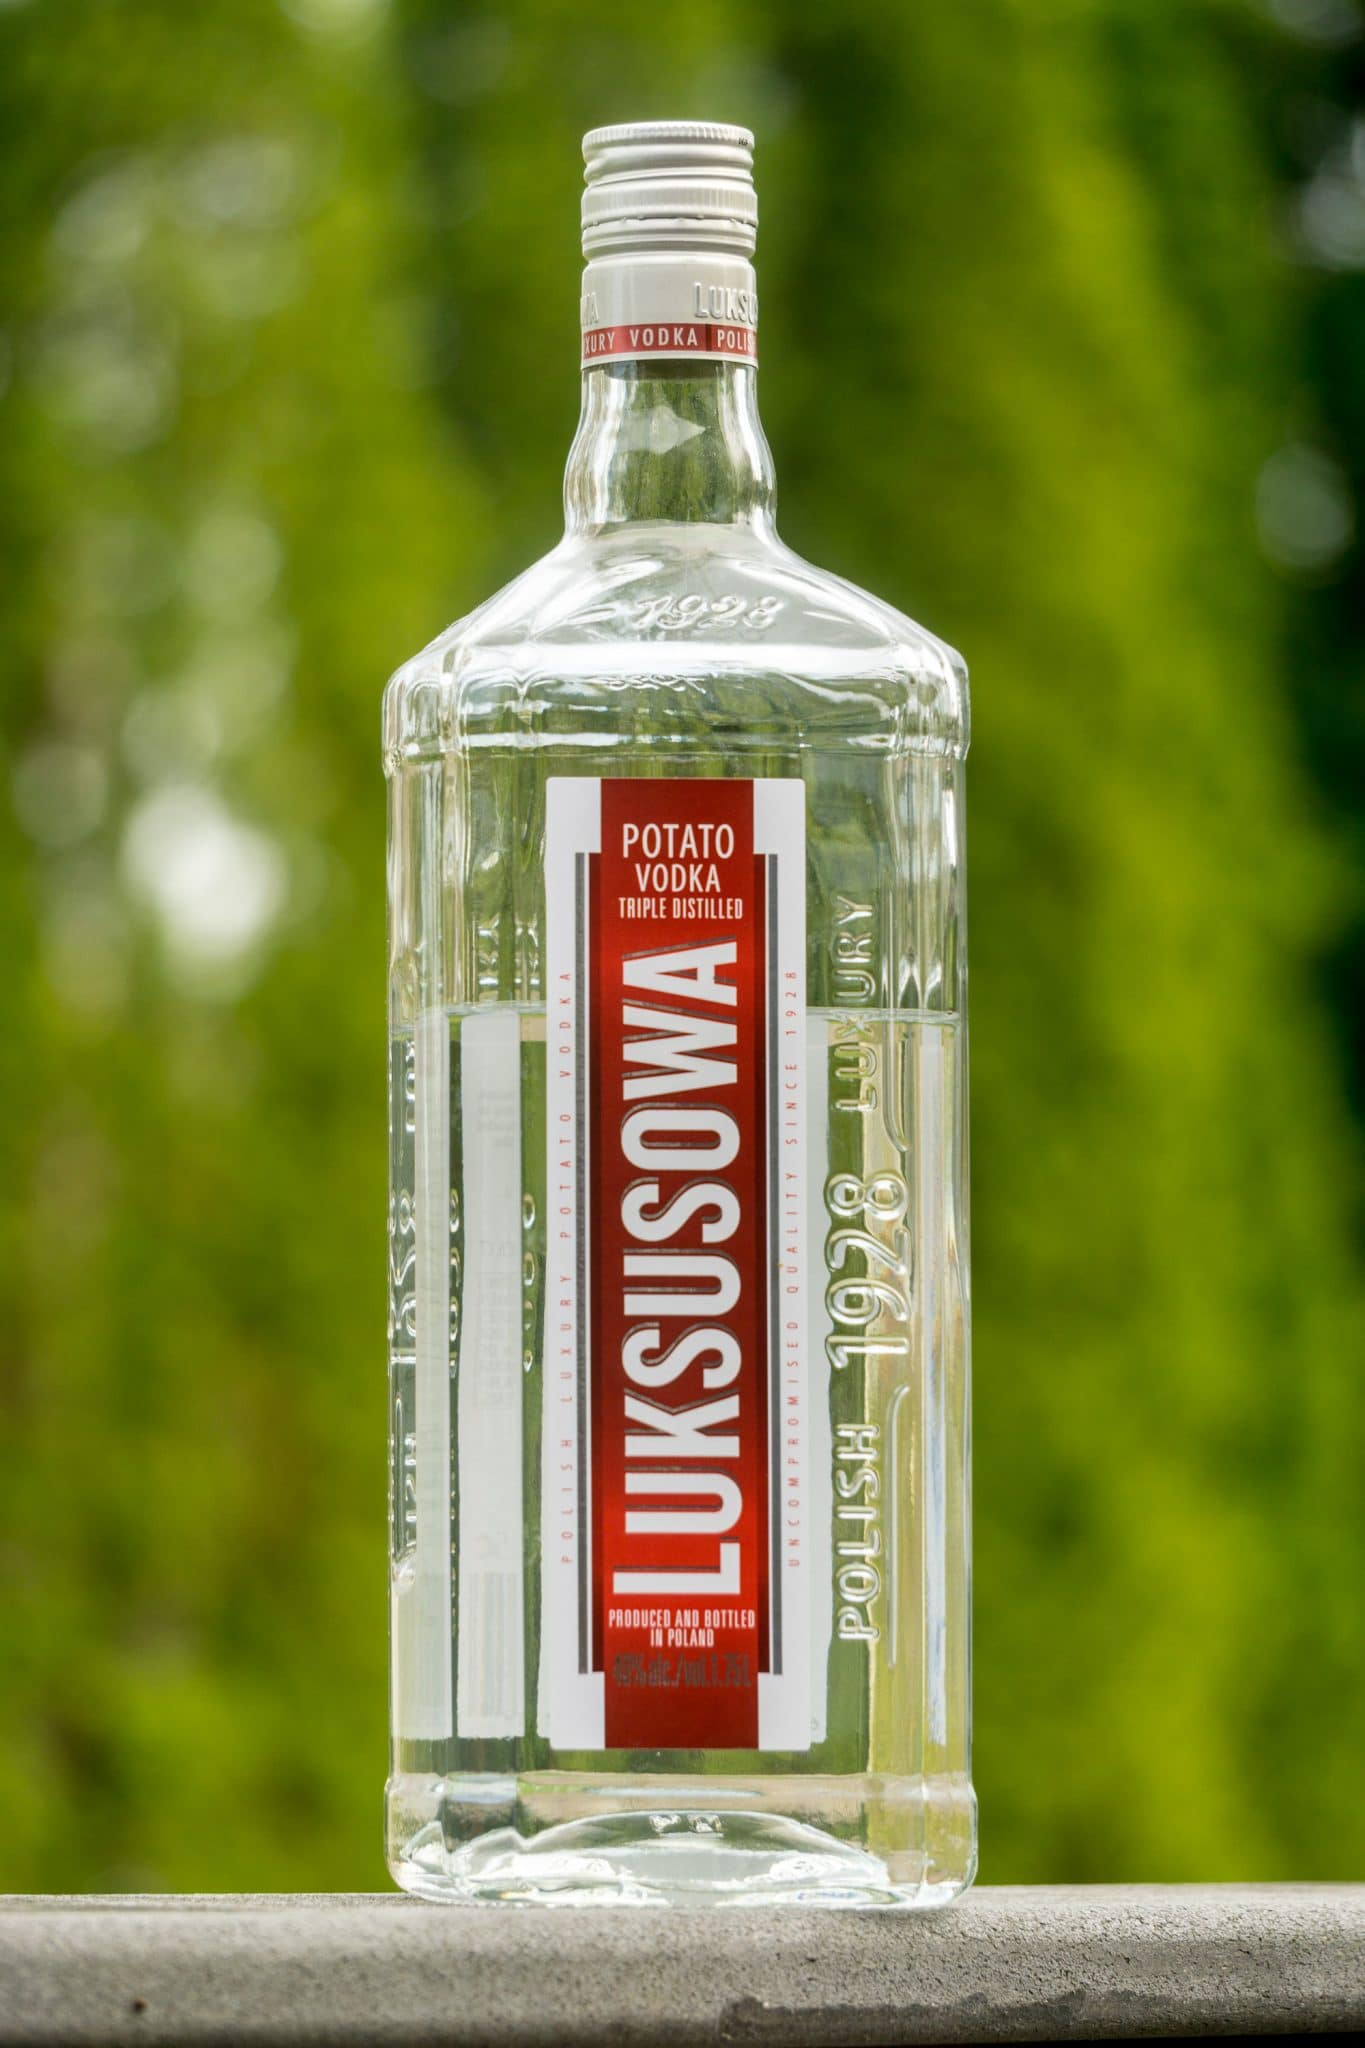 Best Potato Vodka - Top 10 List of the World's Finest Vodka